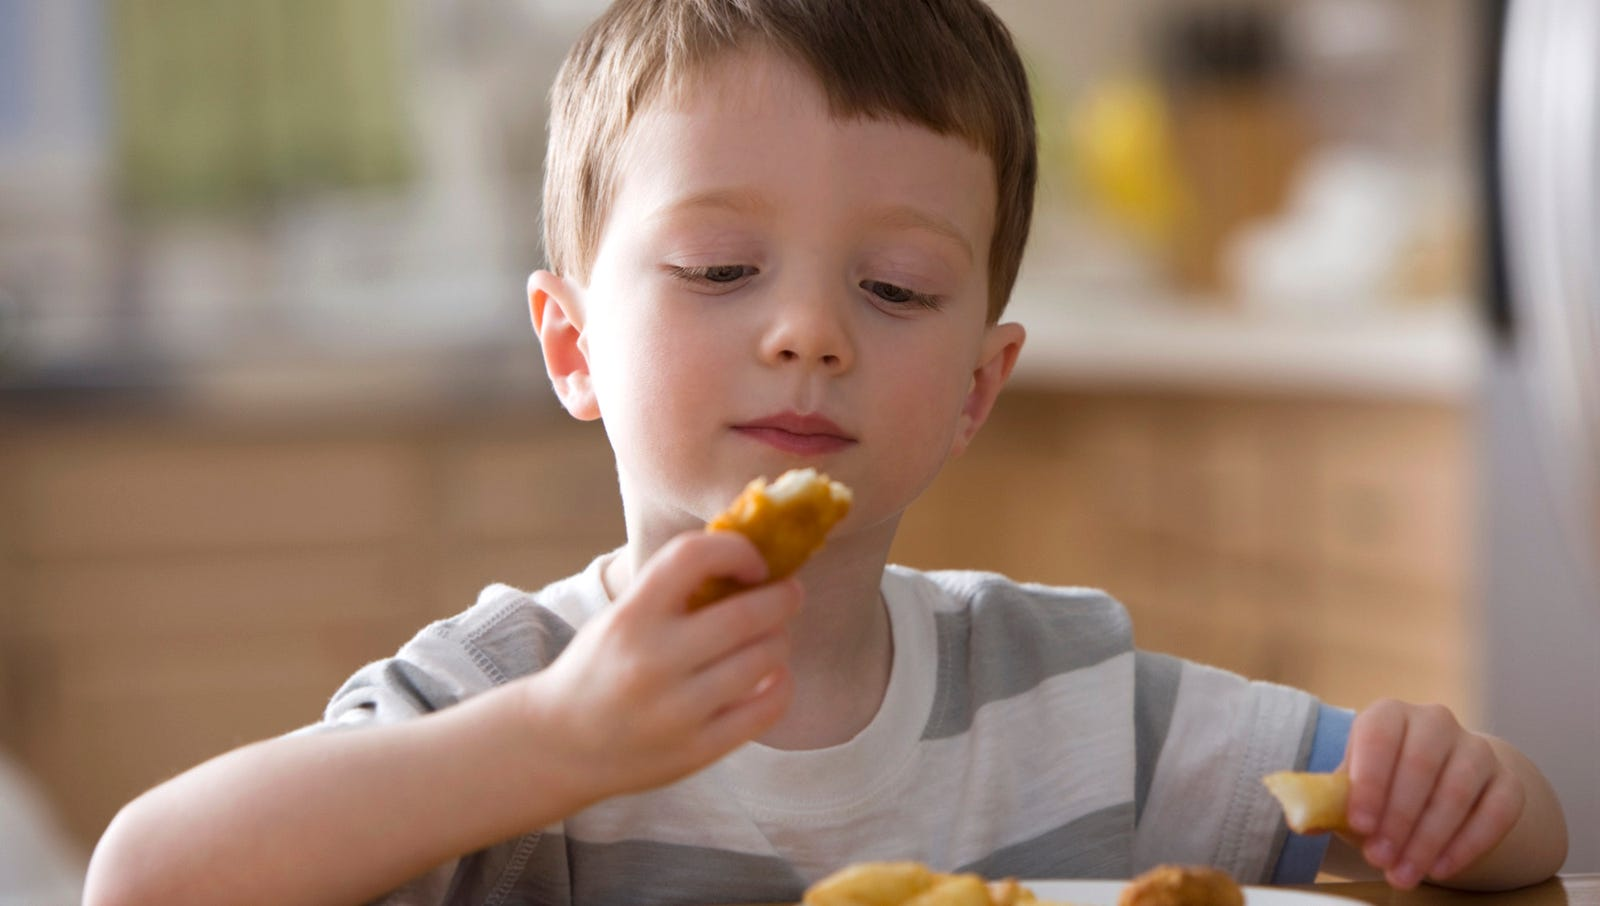 Period Of Time In Which Parents Proud Of How Much Child Can Eat Quickly Dwindling